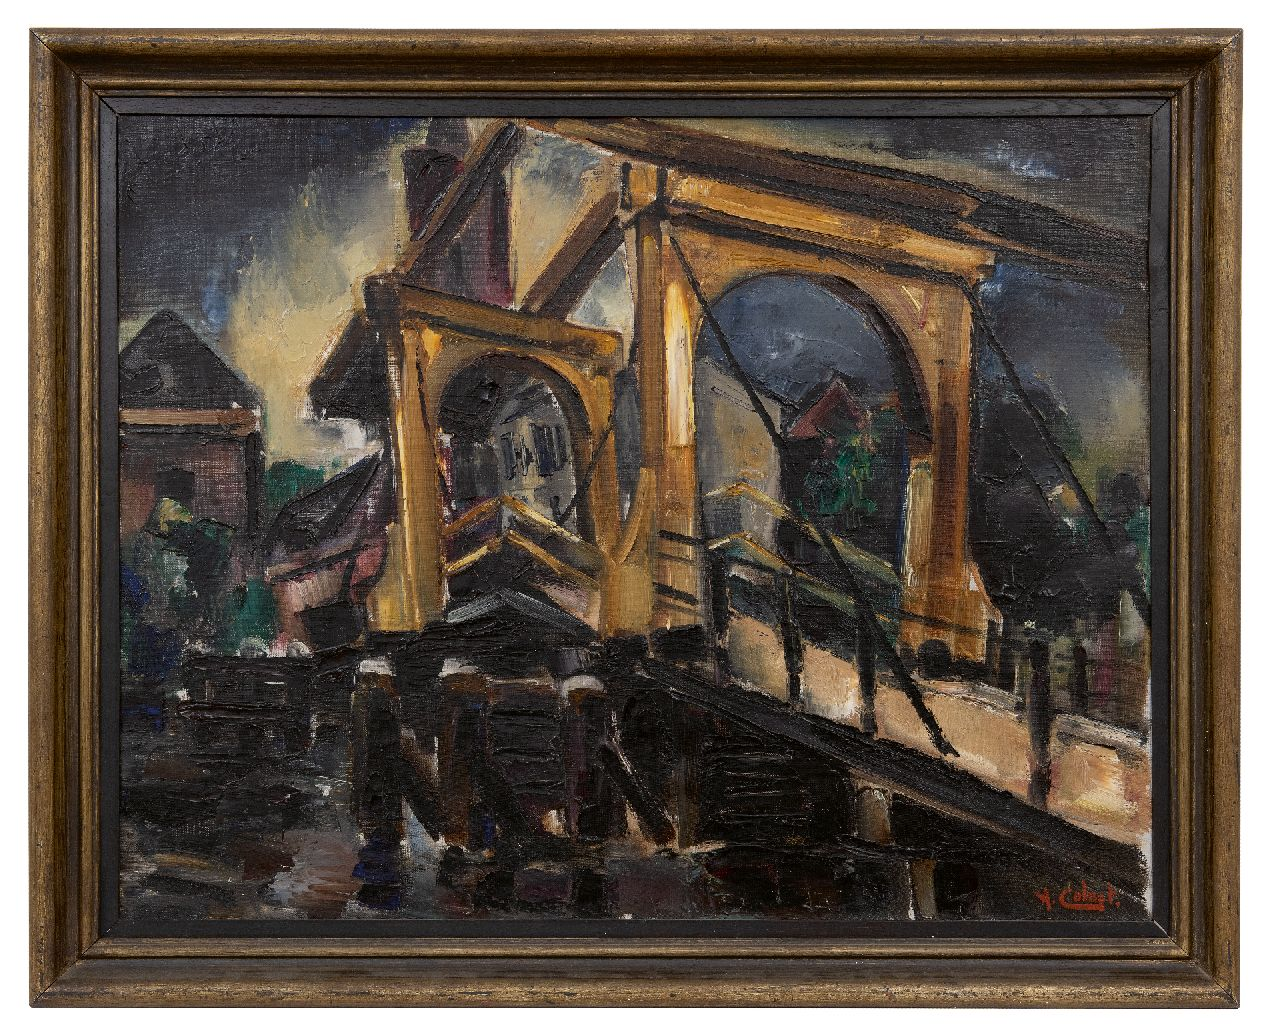 Colnot A.J.G.  | 'Arnout' Jacobus Gustaaf Colnot | Paintings offered for sale | Drawbridge, oil on canvas 61.3 x 76.9 cm, signed l.r.